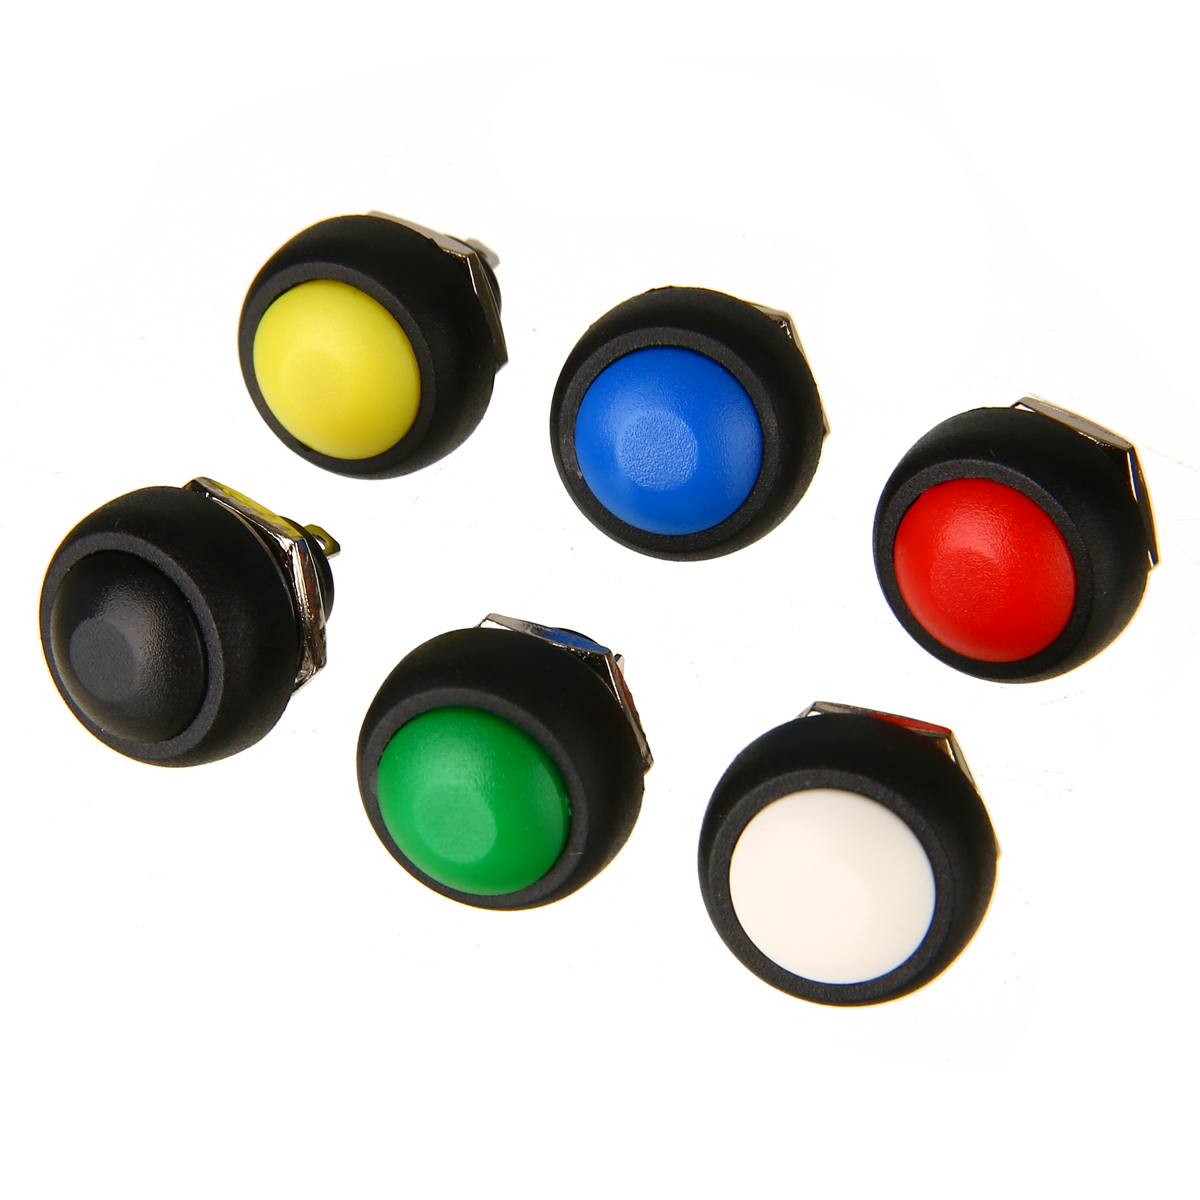 5 X Black 12mm Mini Momentary ON//OFF Round Push Button Toggle Switch Sales